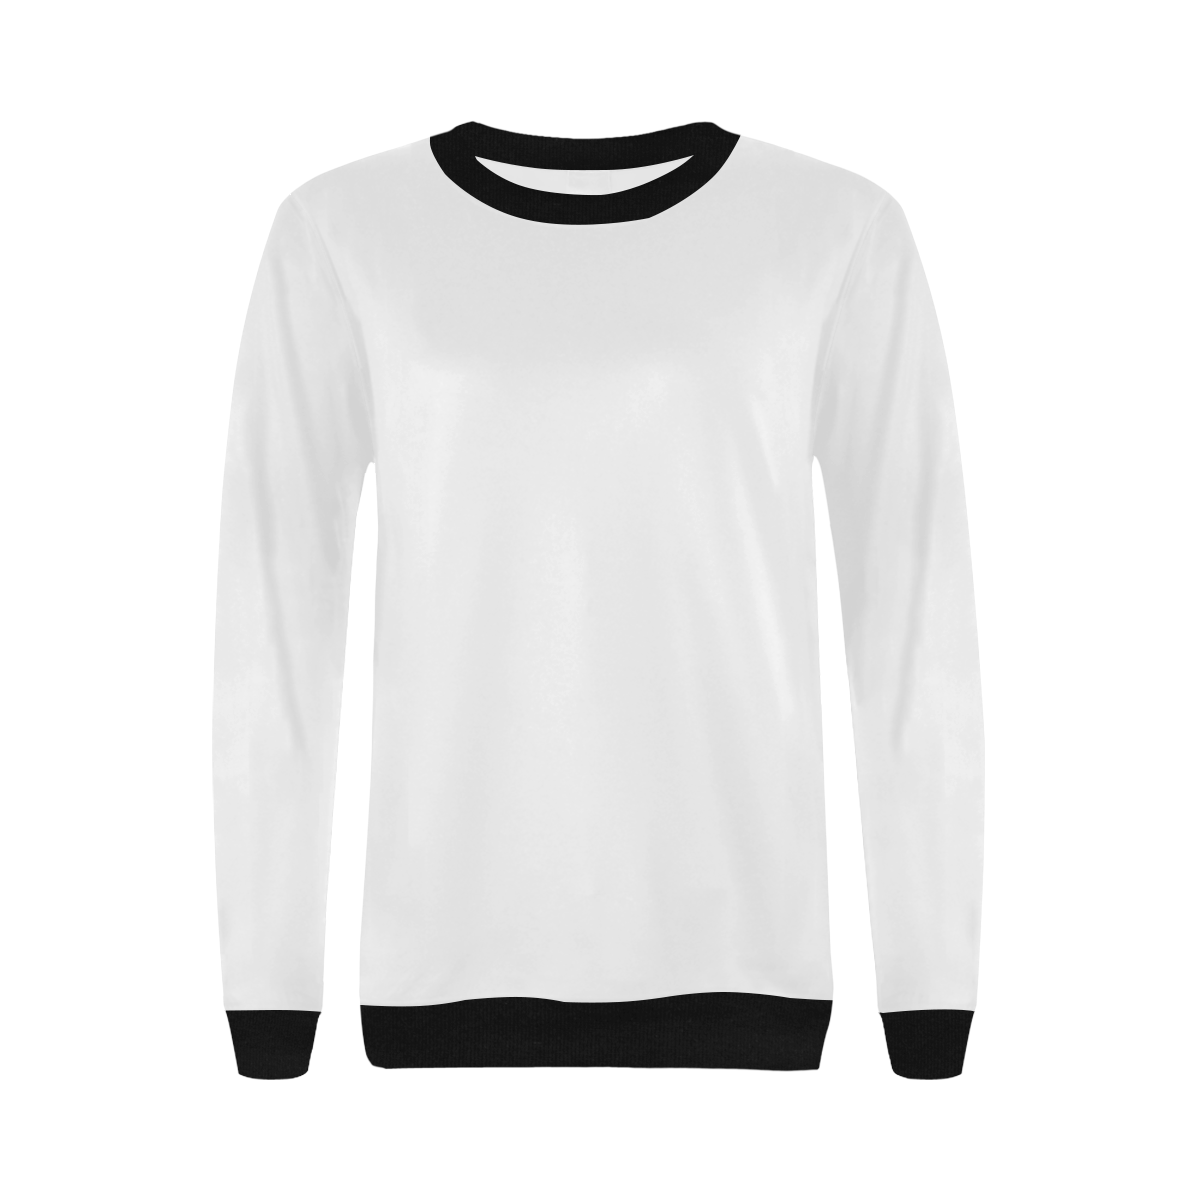 Women's Rib Cuff Crew Neck Sweatshirt (Model H34)